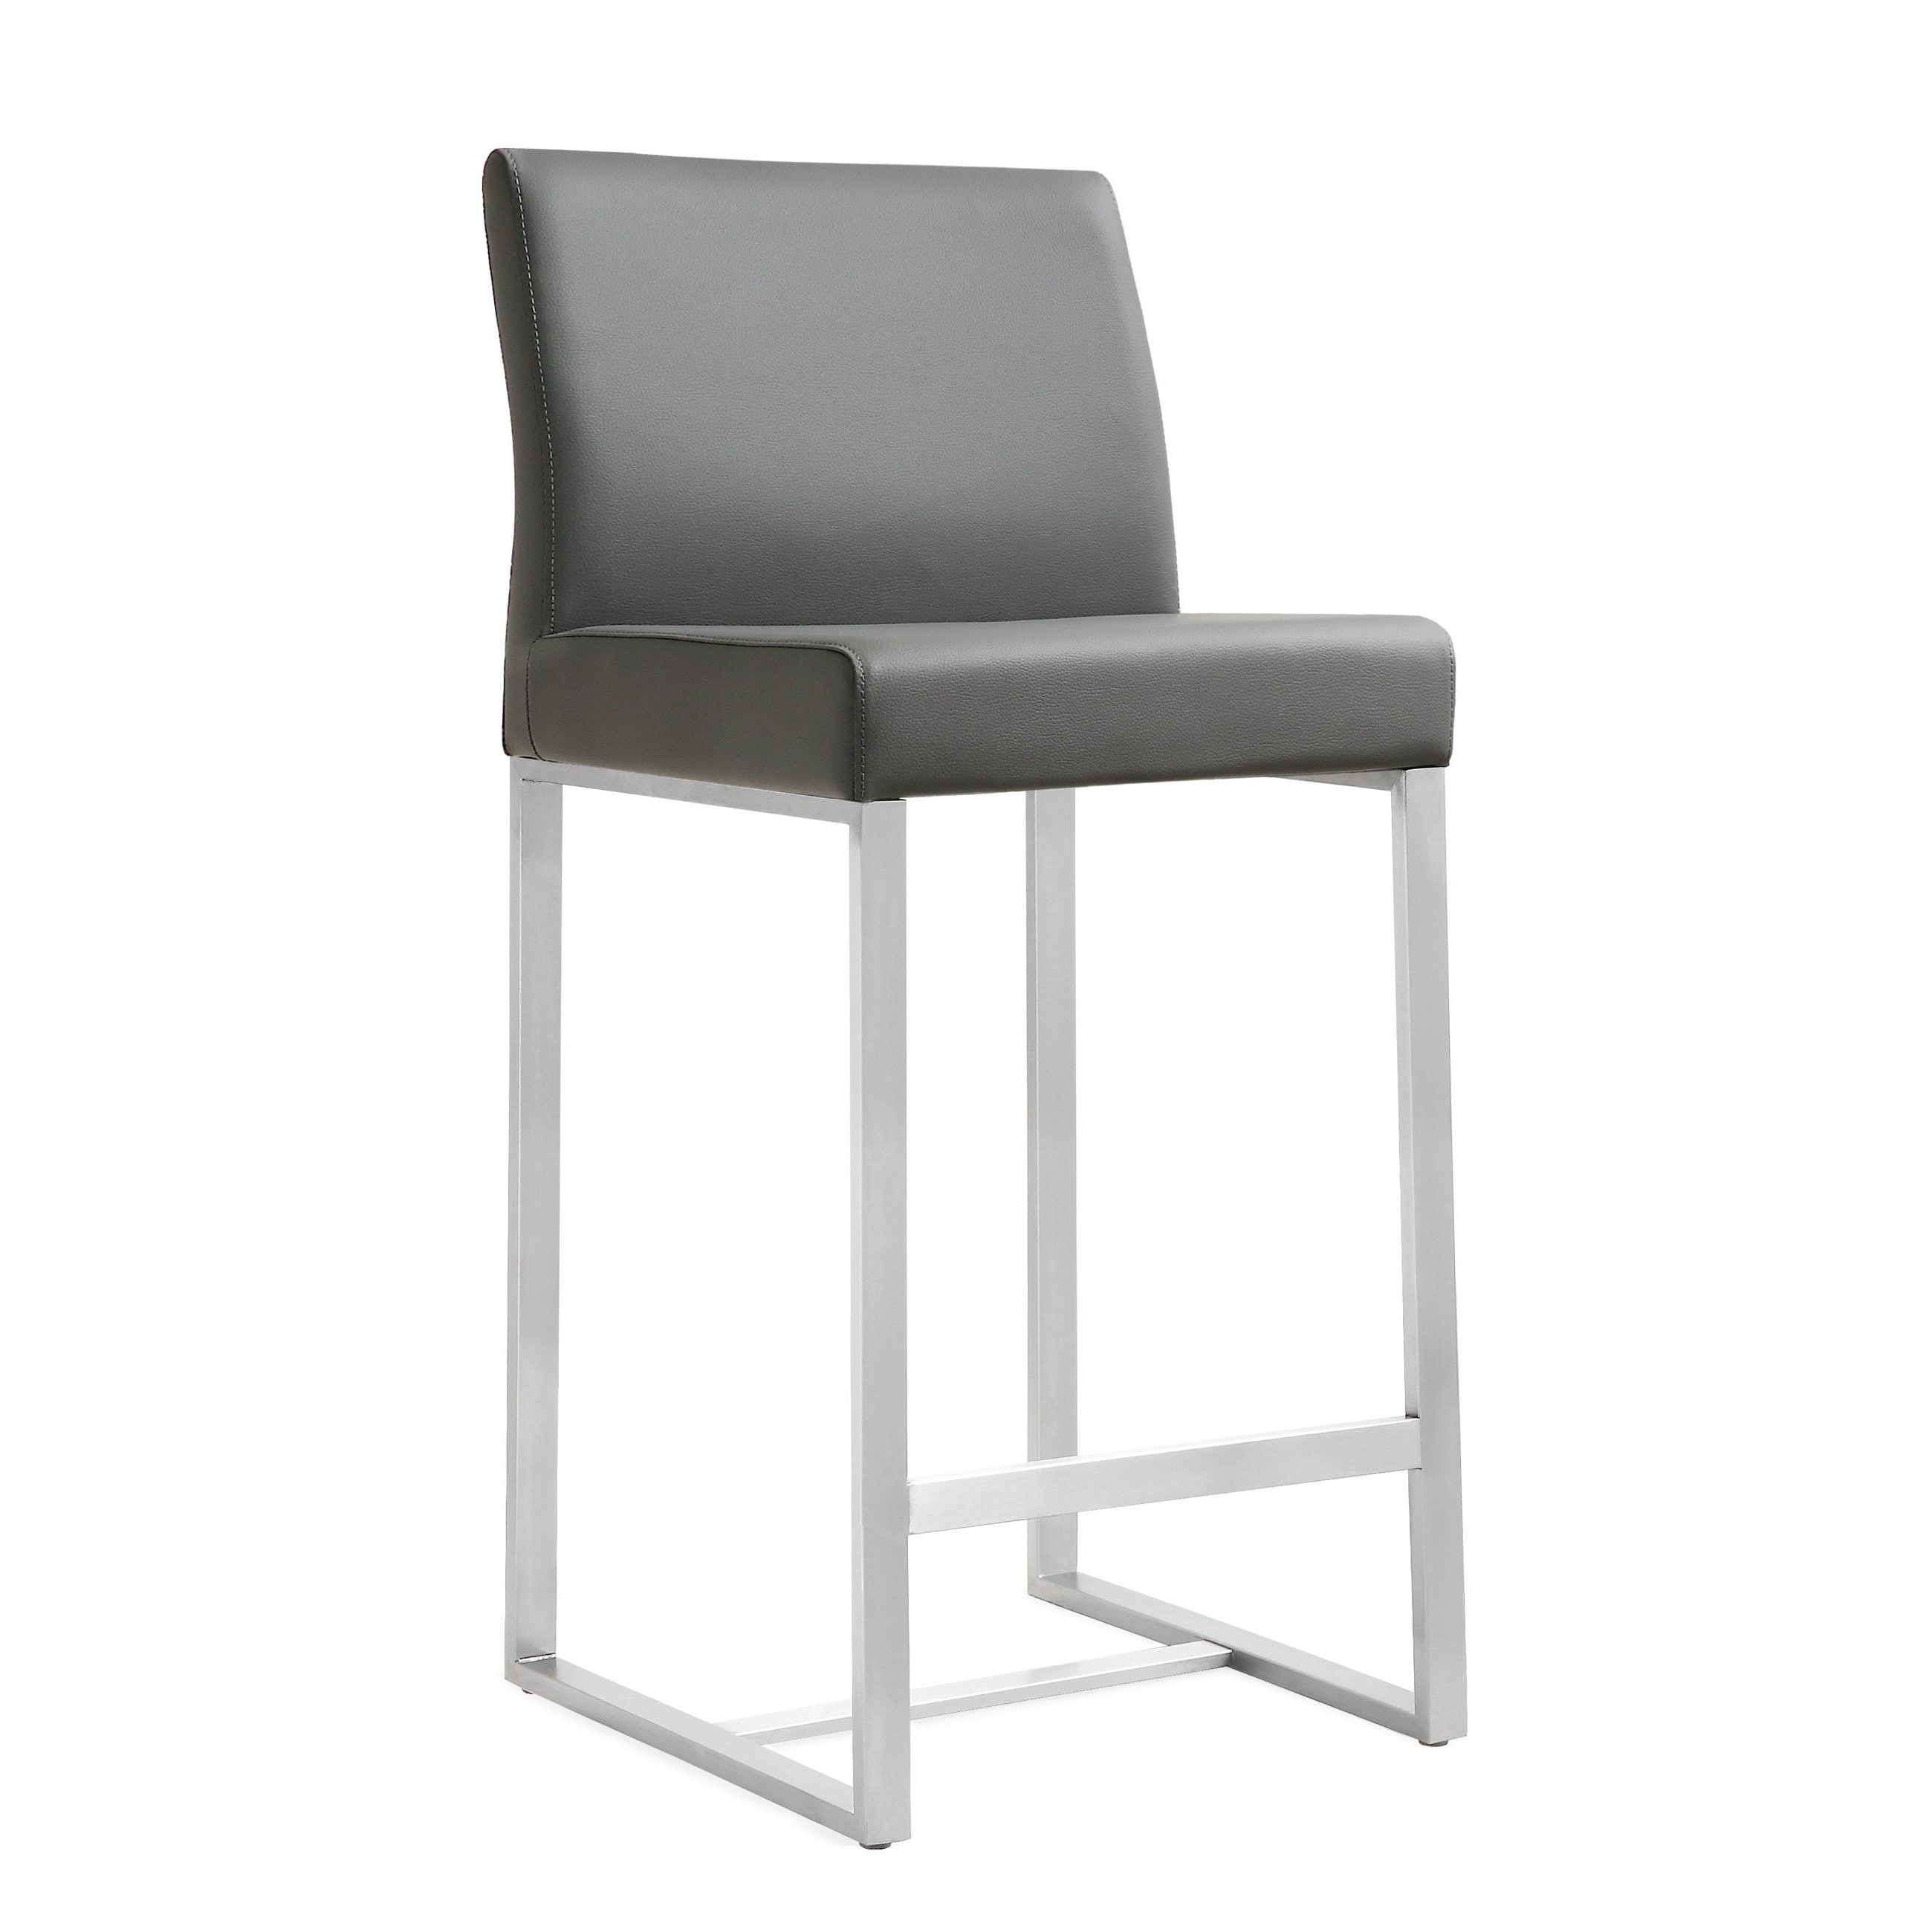 Excellent Tov Denmark Grey Counter Stool Set Of 2 Caraccident5 Cool Chair Designs And Ideas Caraccident5Info